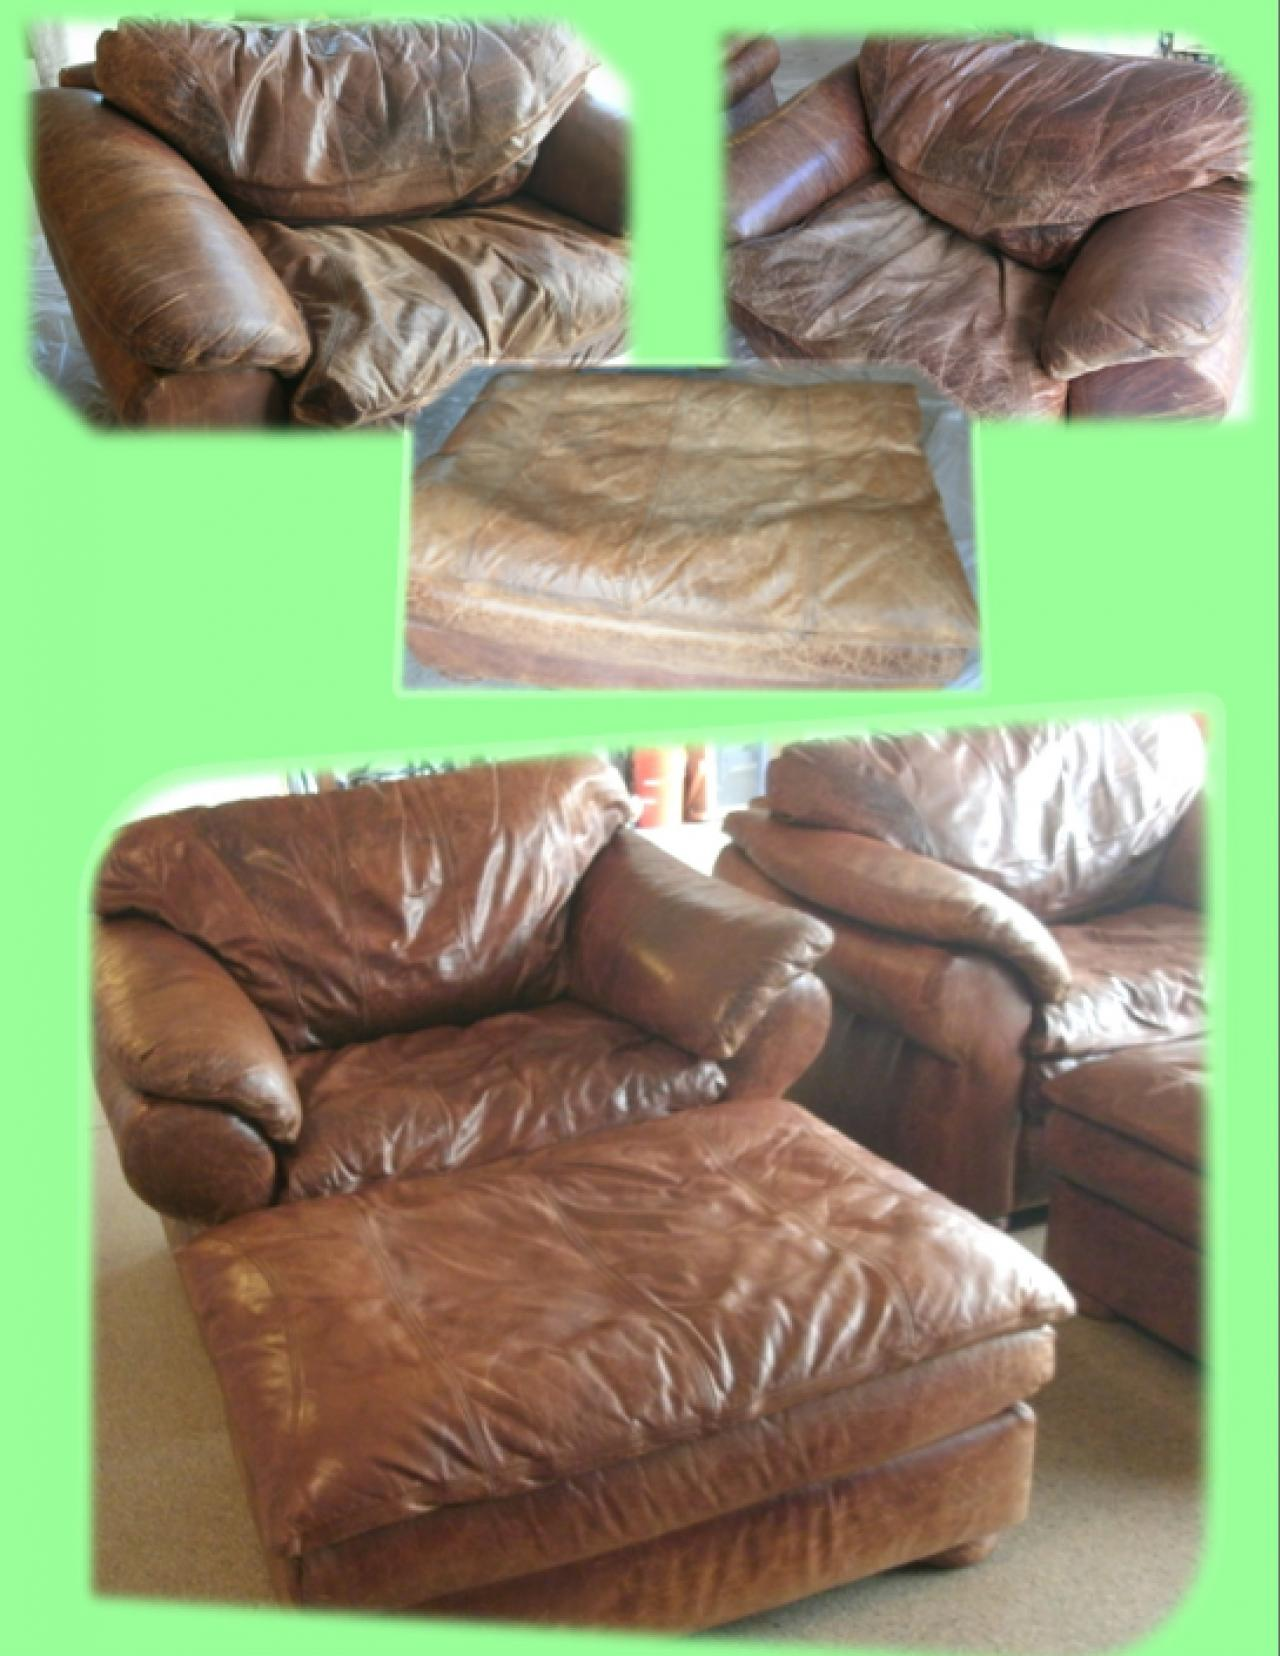 ... Denver Since 1912; Colorado Leather Cleaning And Restoration Project  Silverthorne Colorado ...